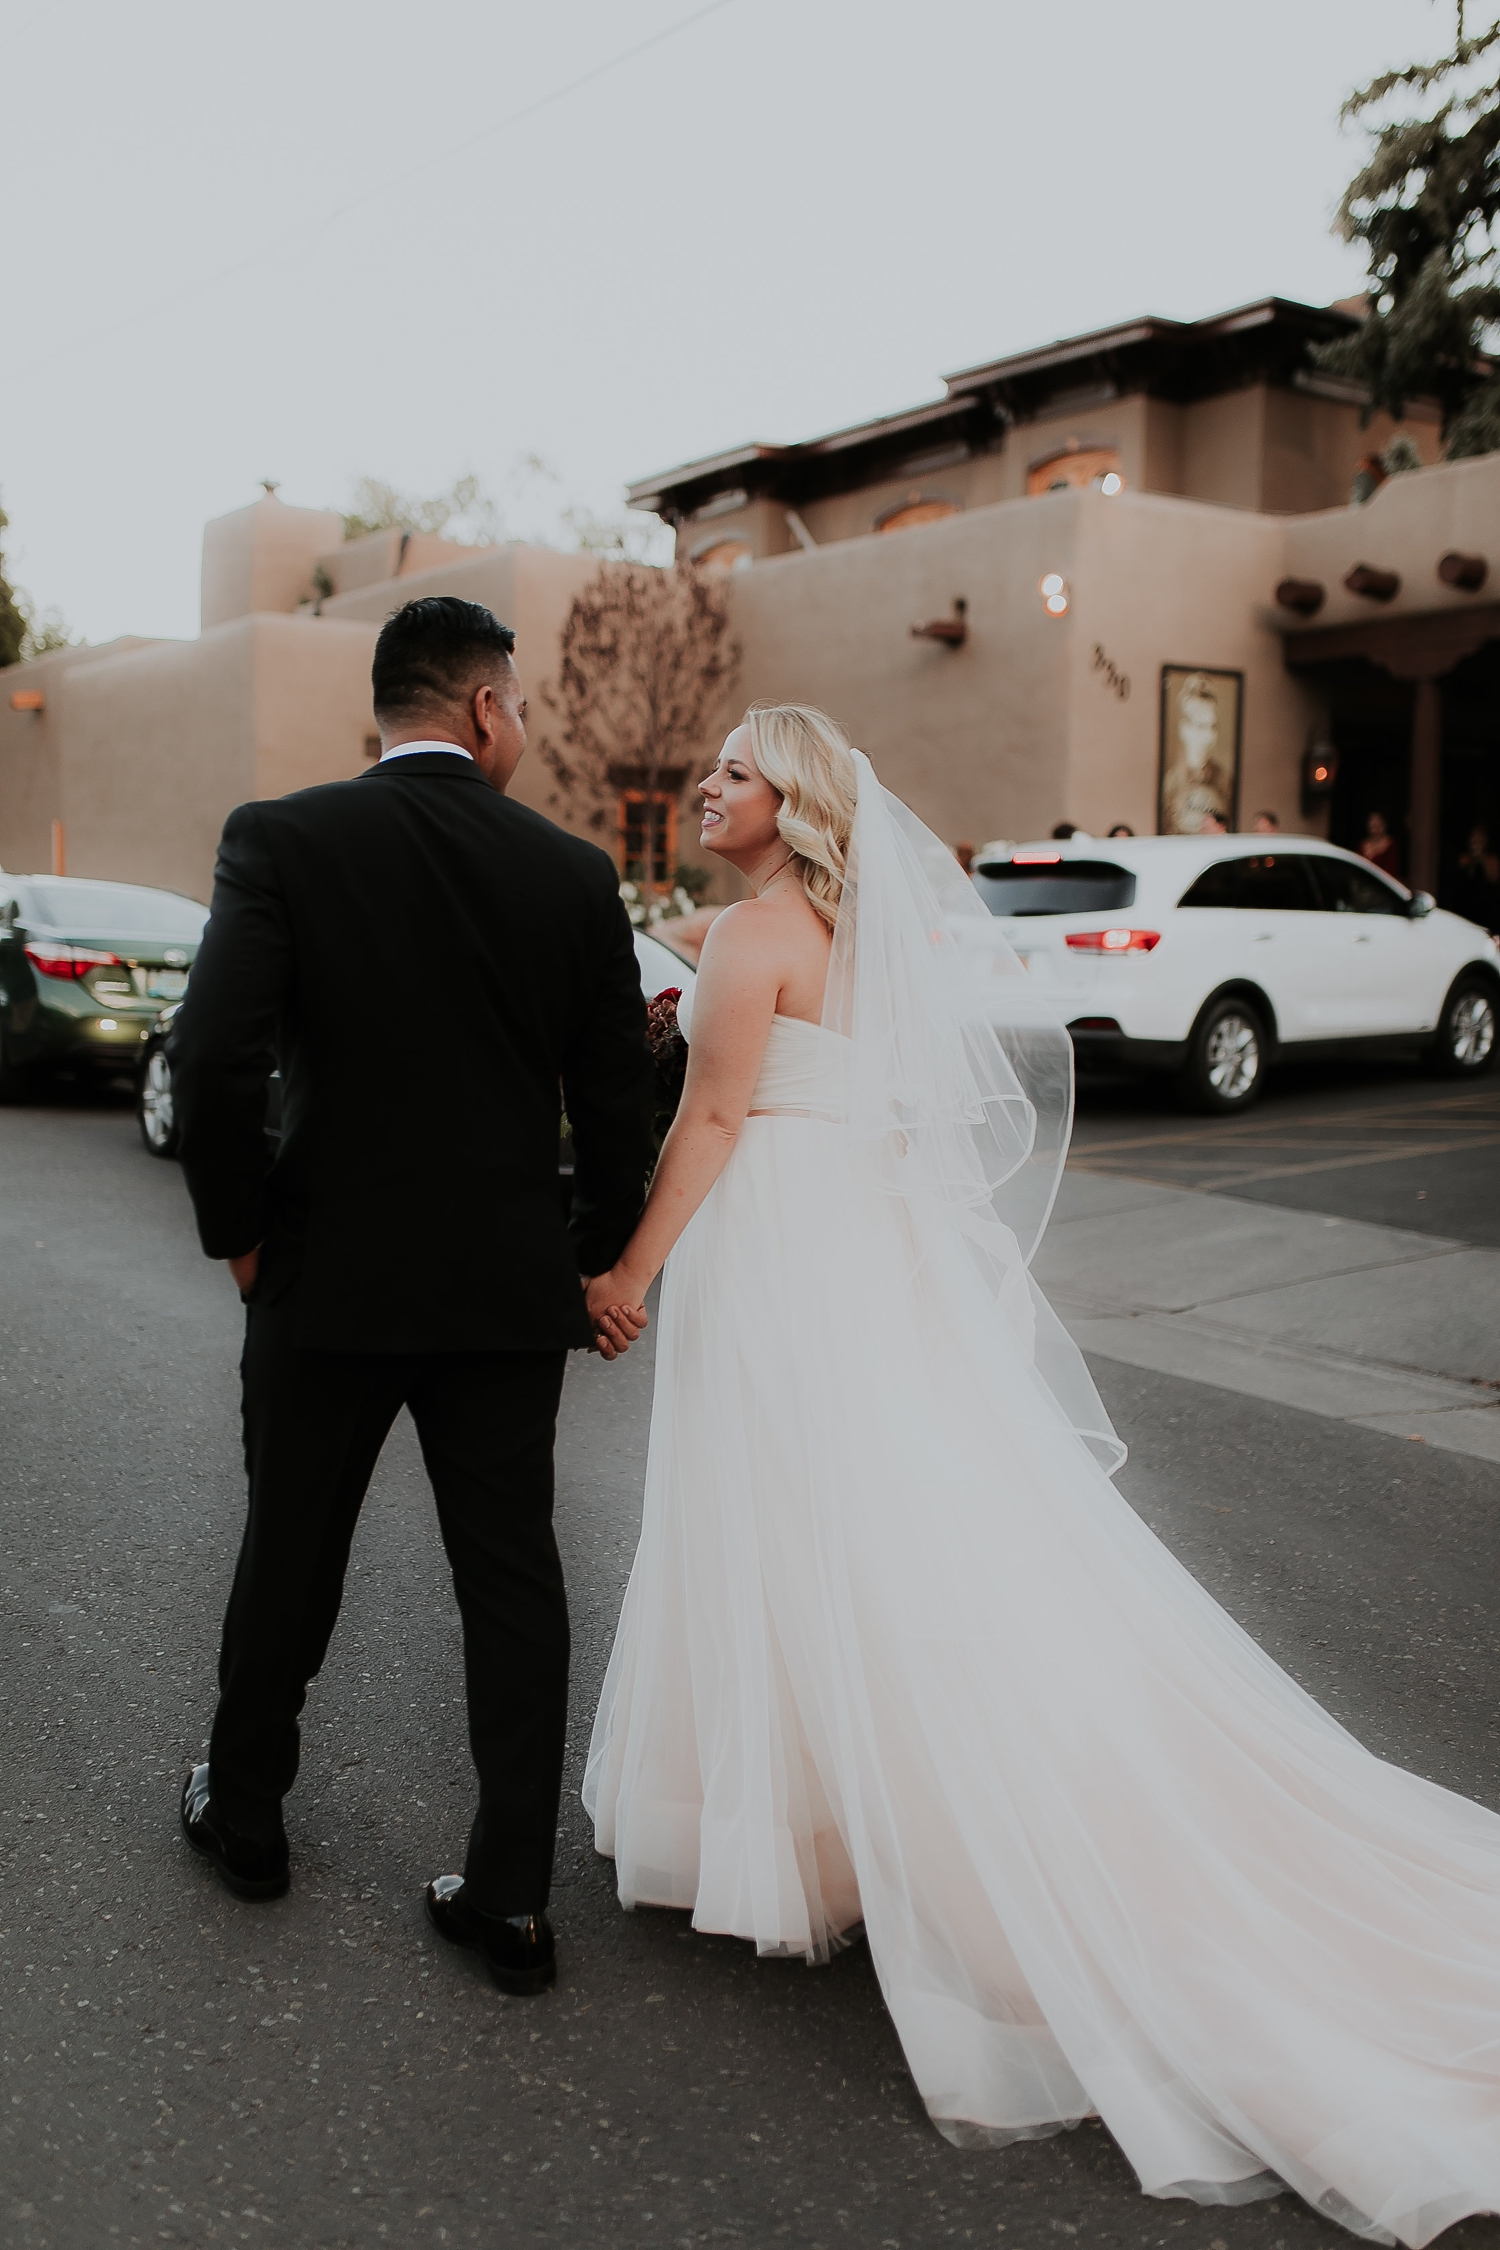 Alicia+lucia+photography+-+albuquerque+wedding+photographer+-+santa+fe+wedding+photography+-+new+mexico+wedding+photographer+-+la+ posada+santa+fe+wedding_0061.jpg